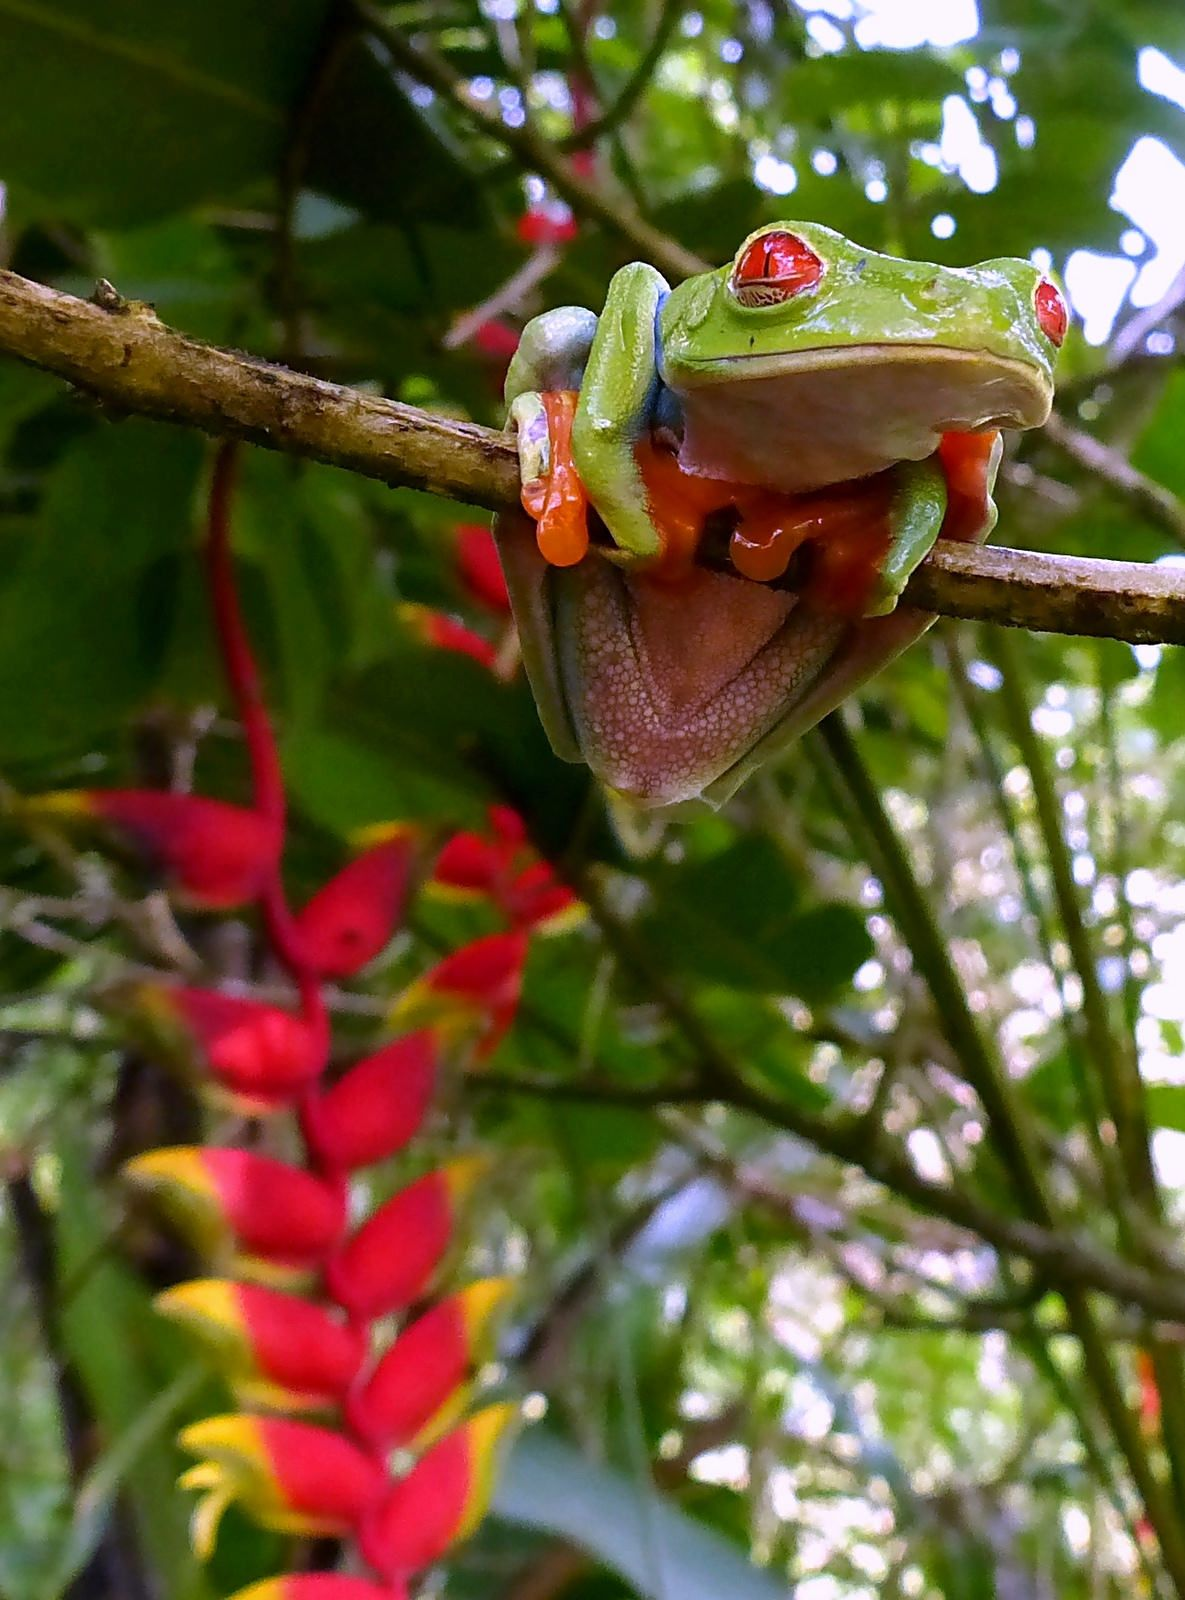 Redeyed Tree Frog, in a Costa Rica garden. Red eyed